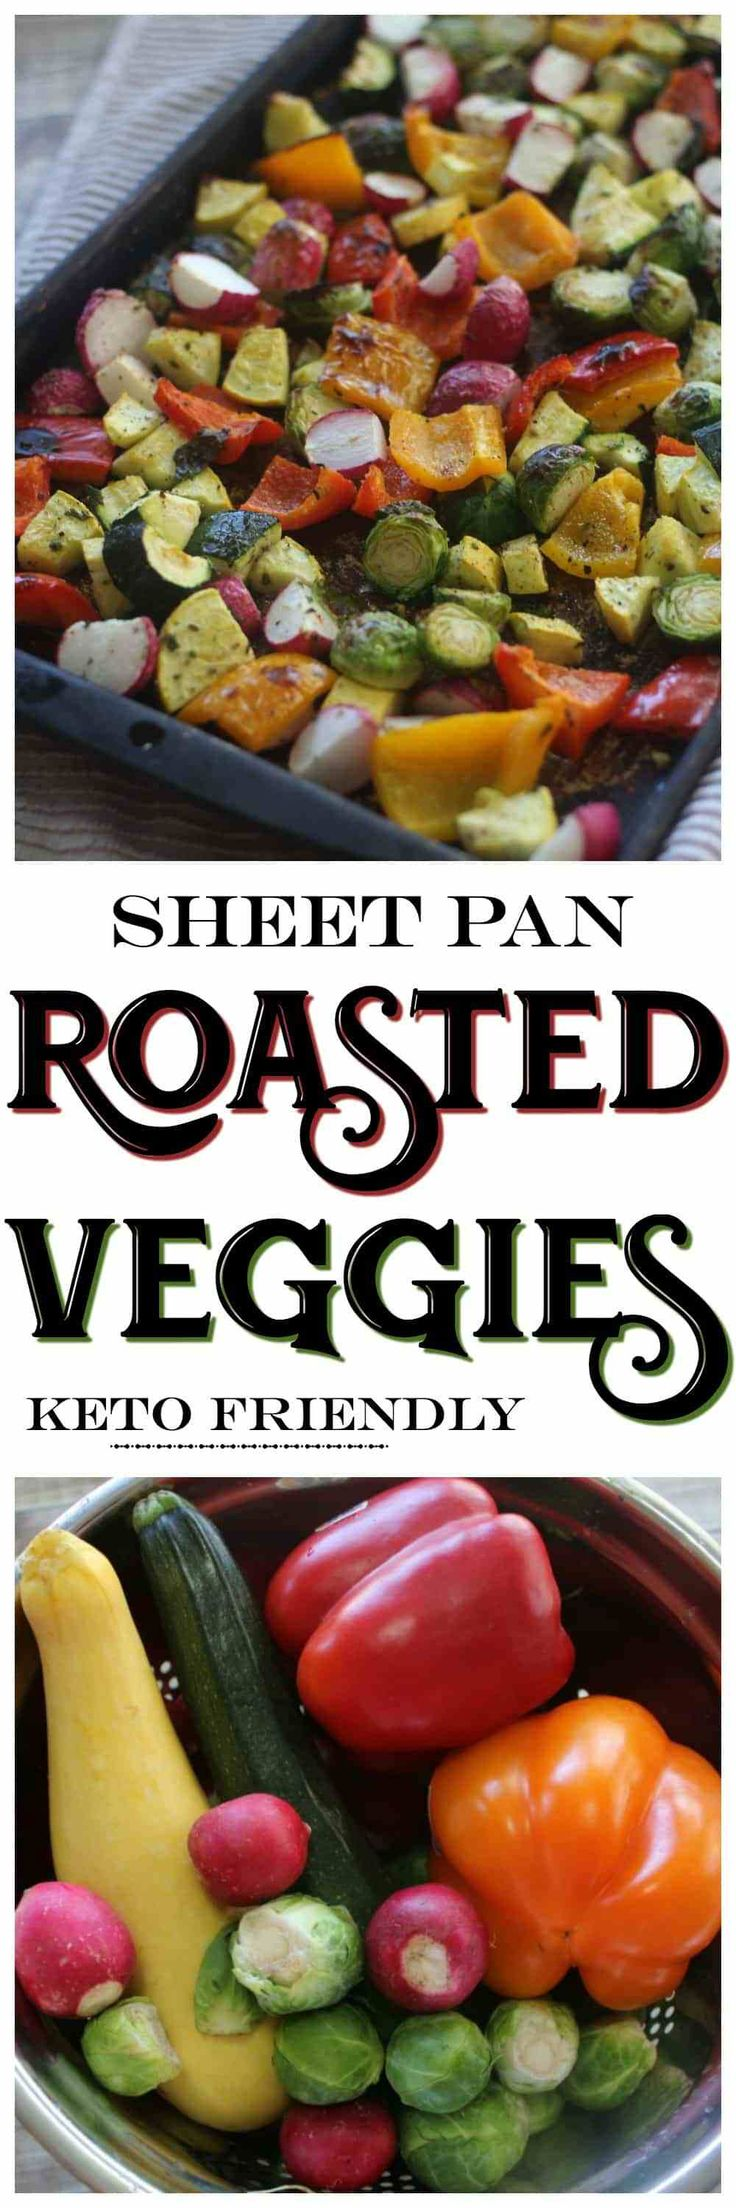 Sheet Pan Roasted Low Carb Veggies | This Sheet Pan Roasted Veggies are the perfect low carb keto side dish! Perfect for simple meal prep or for your low carb holiday meals.